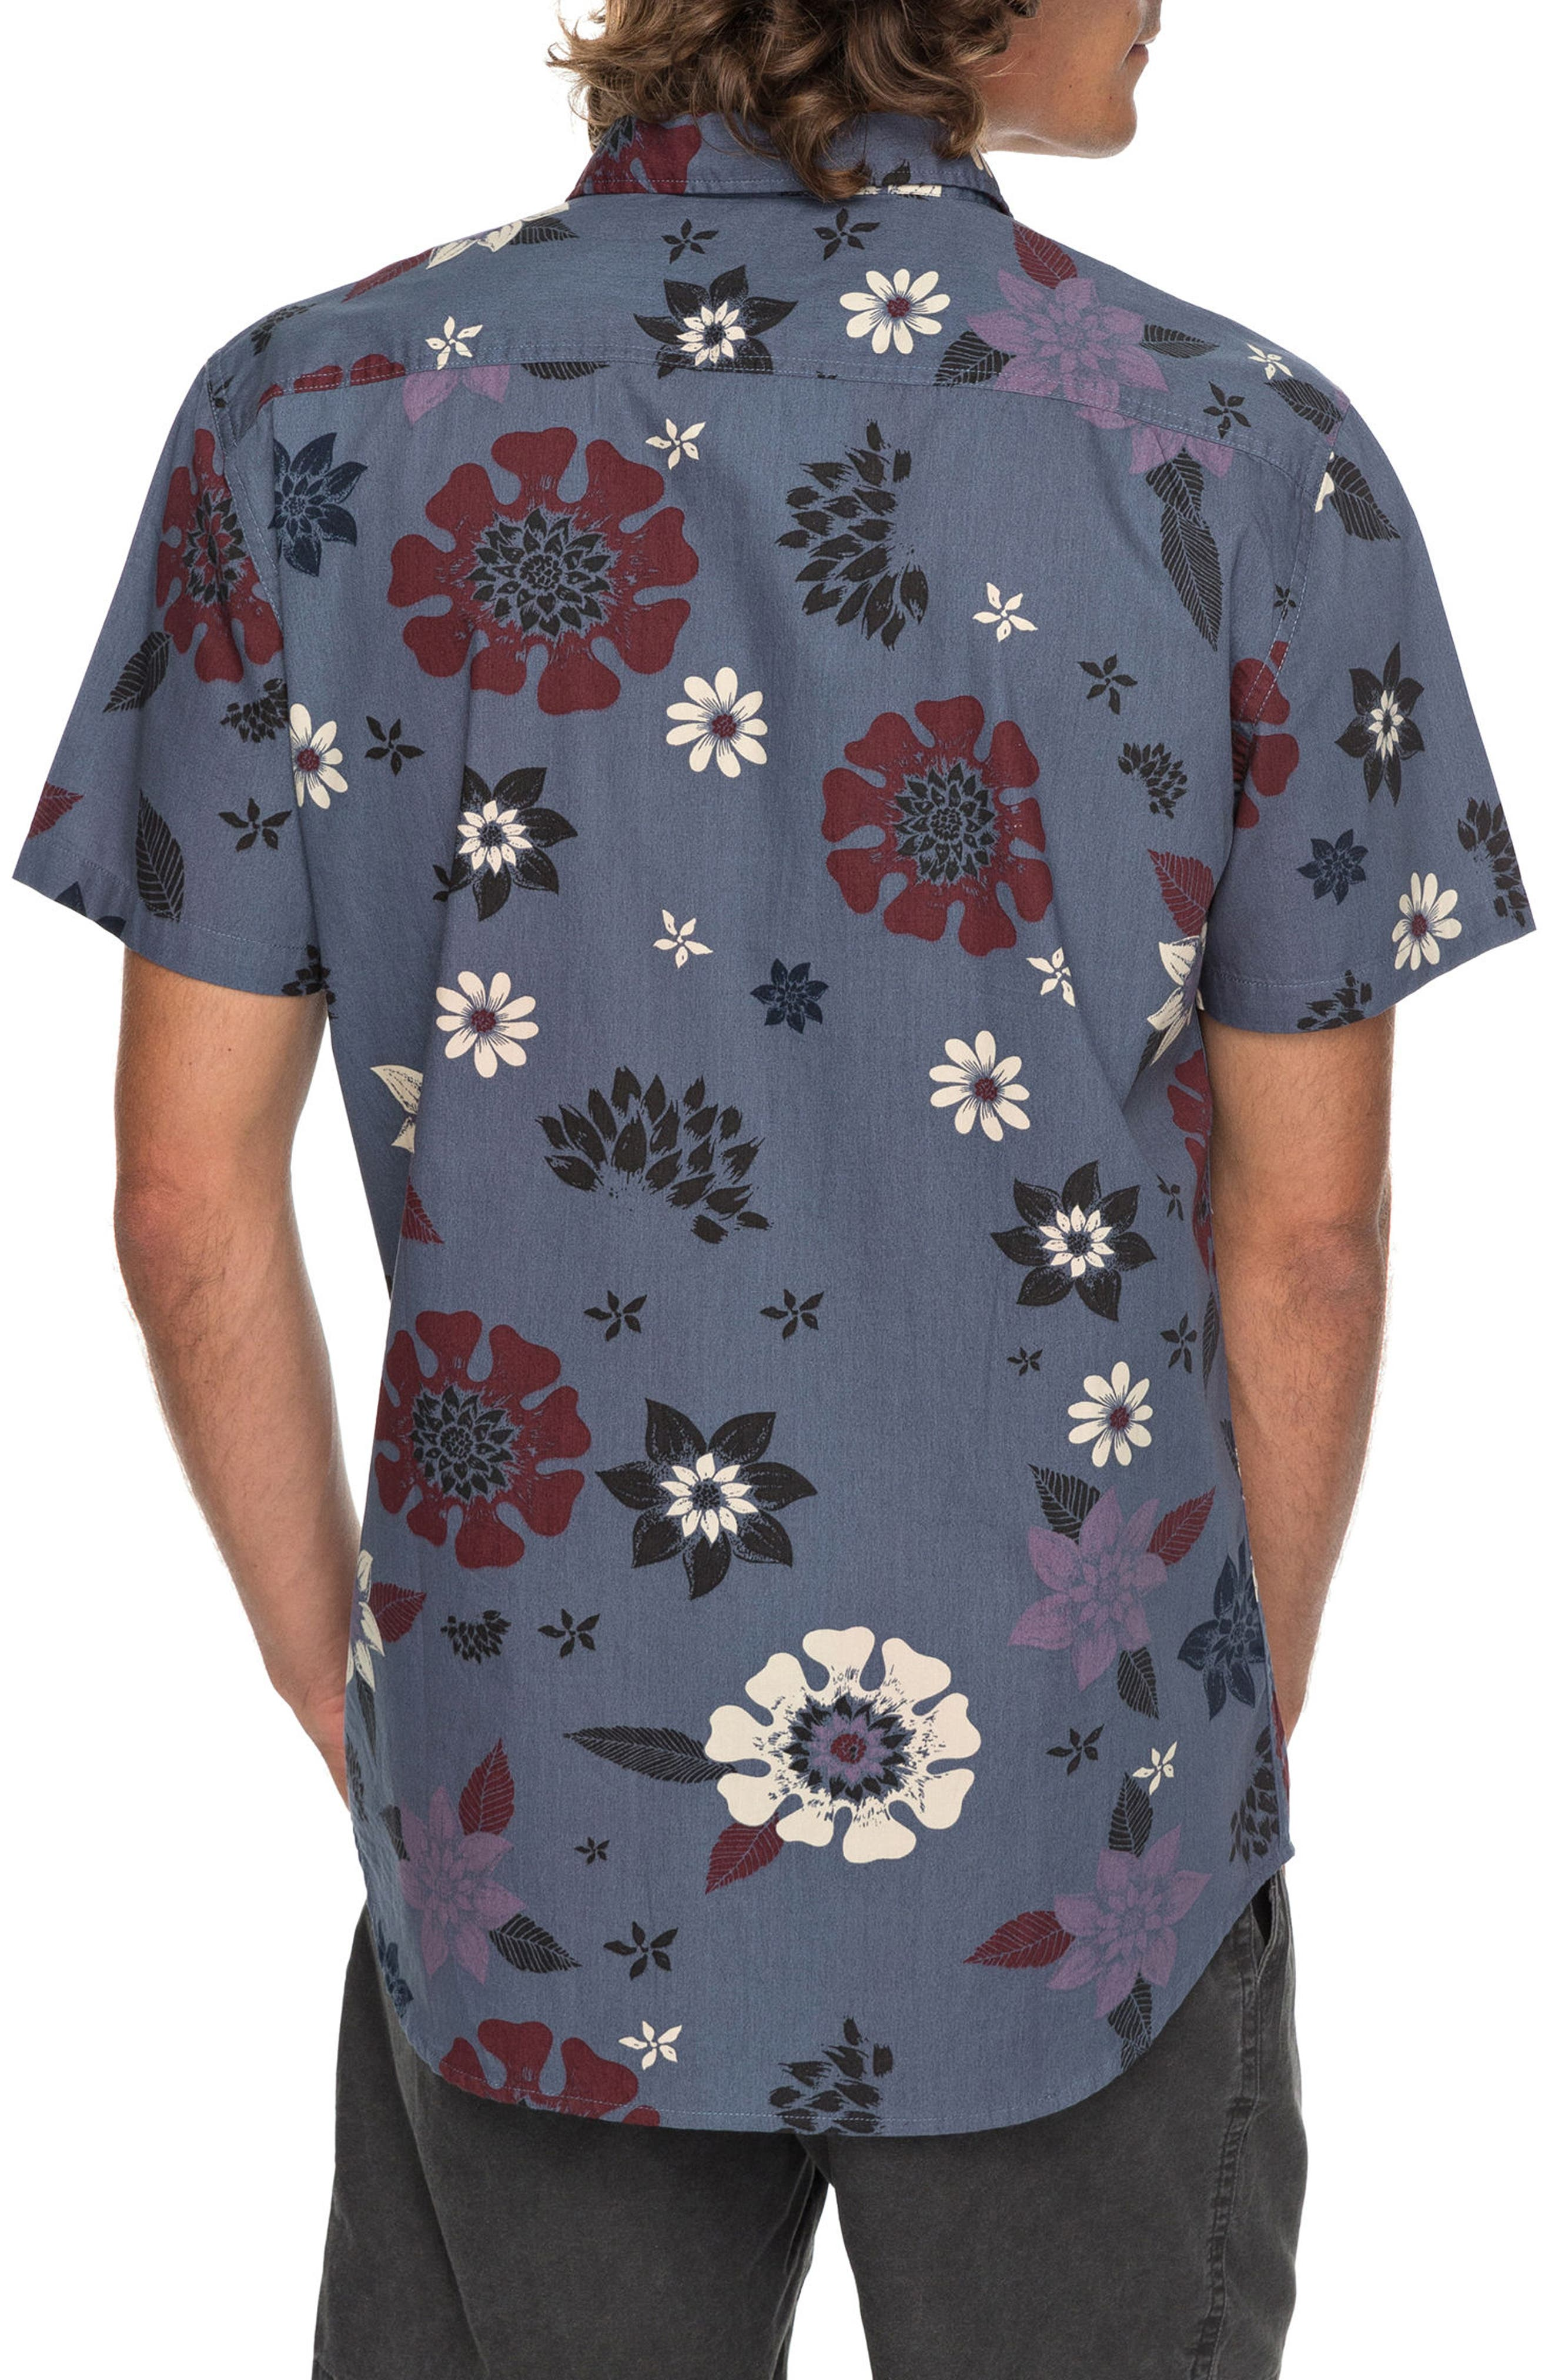 Sunset Floral Woven Shirt,                             Alternate thumbnail 2, color,                             020